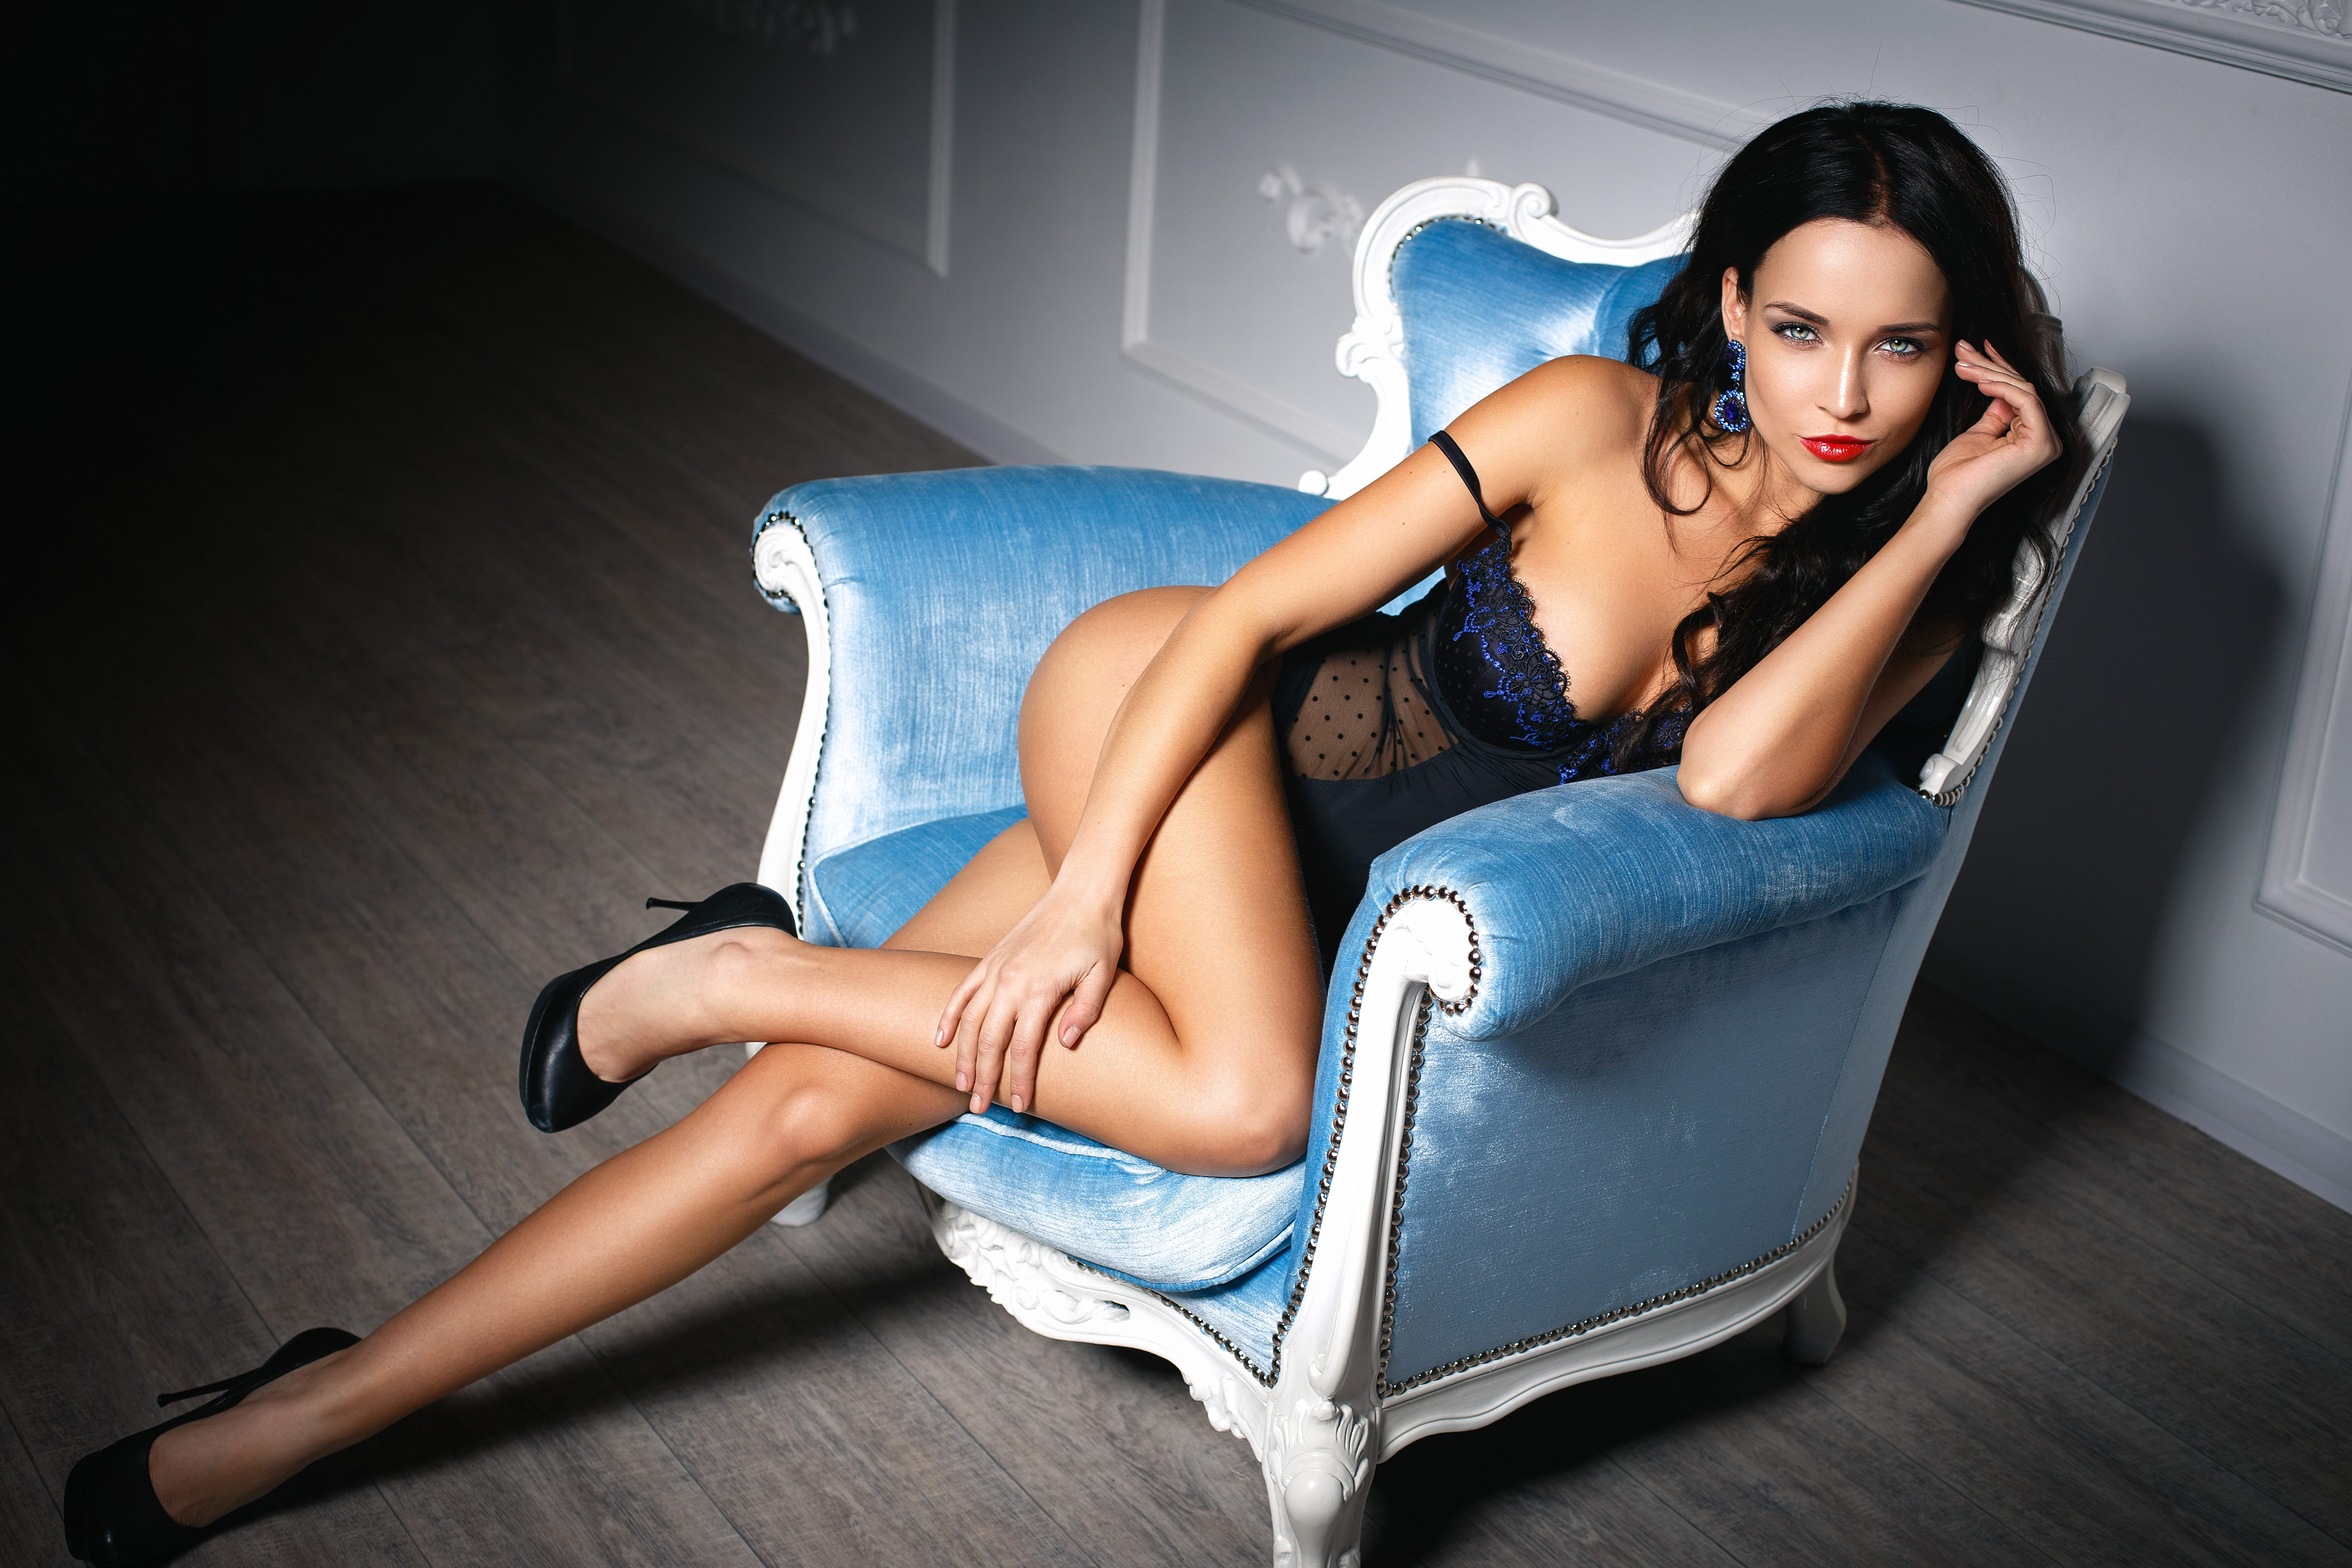 A girl in sexy lingerie